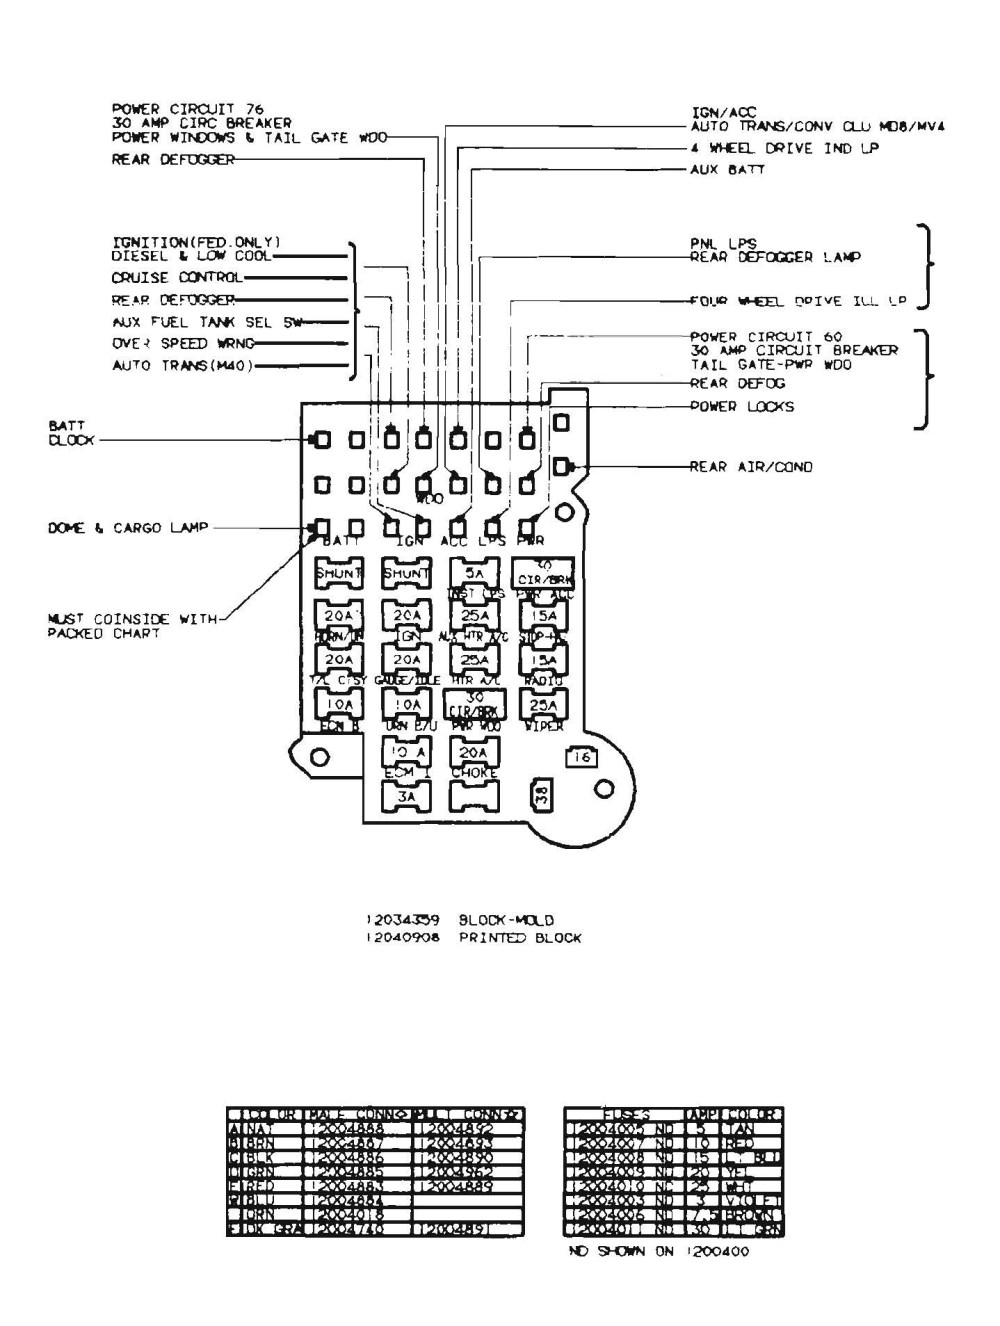 medium resolution of 1987 chevy camaro fuse box diagram wiring diagram expert86 camaro fuse box diagram wiring diagram centre